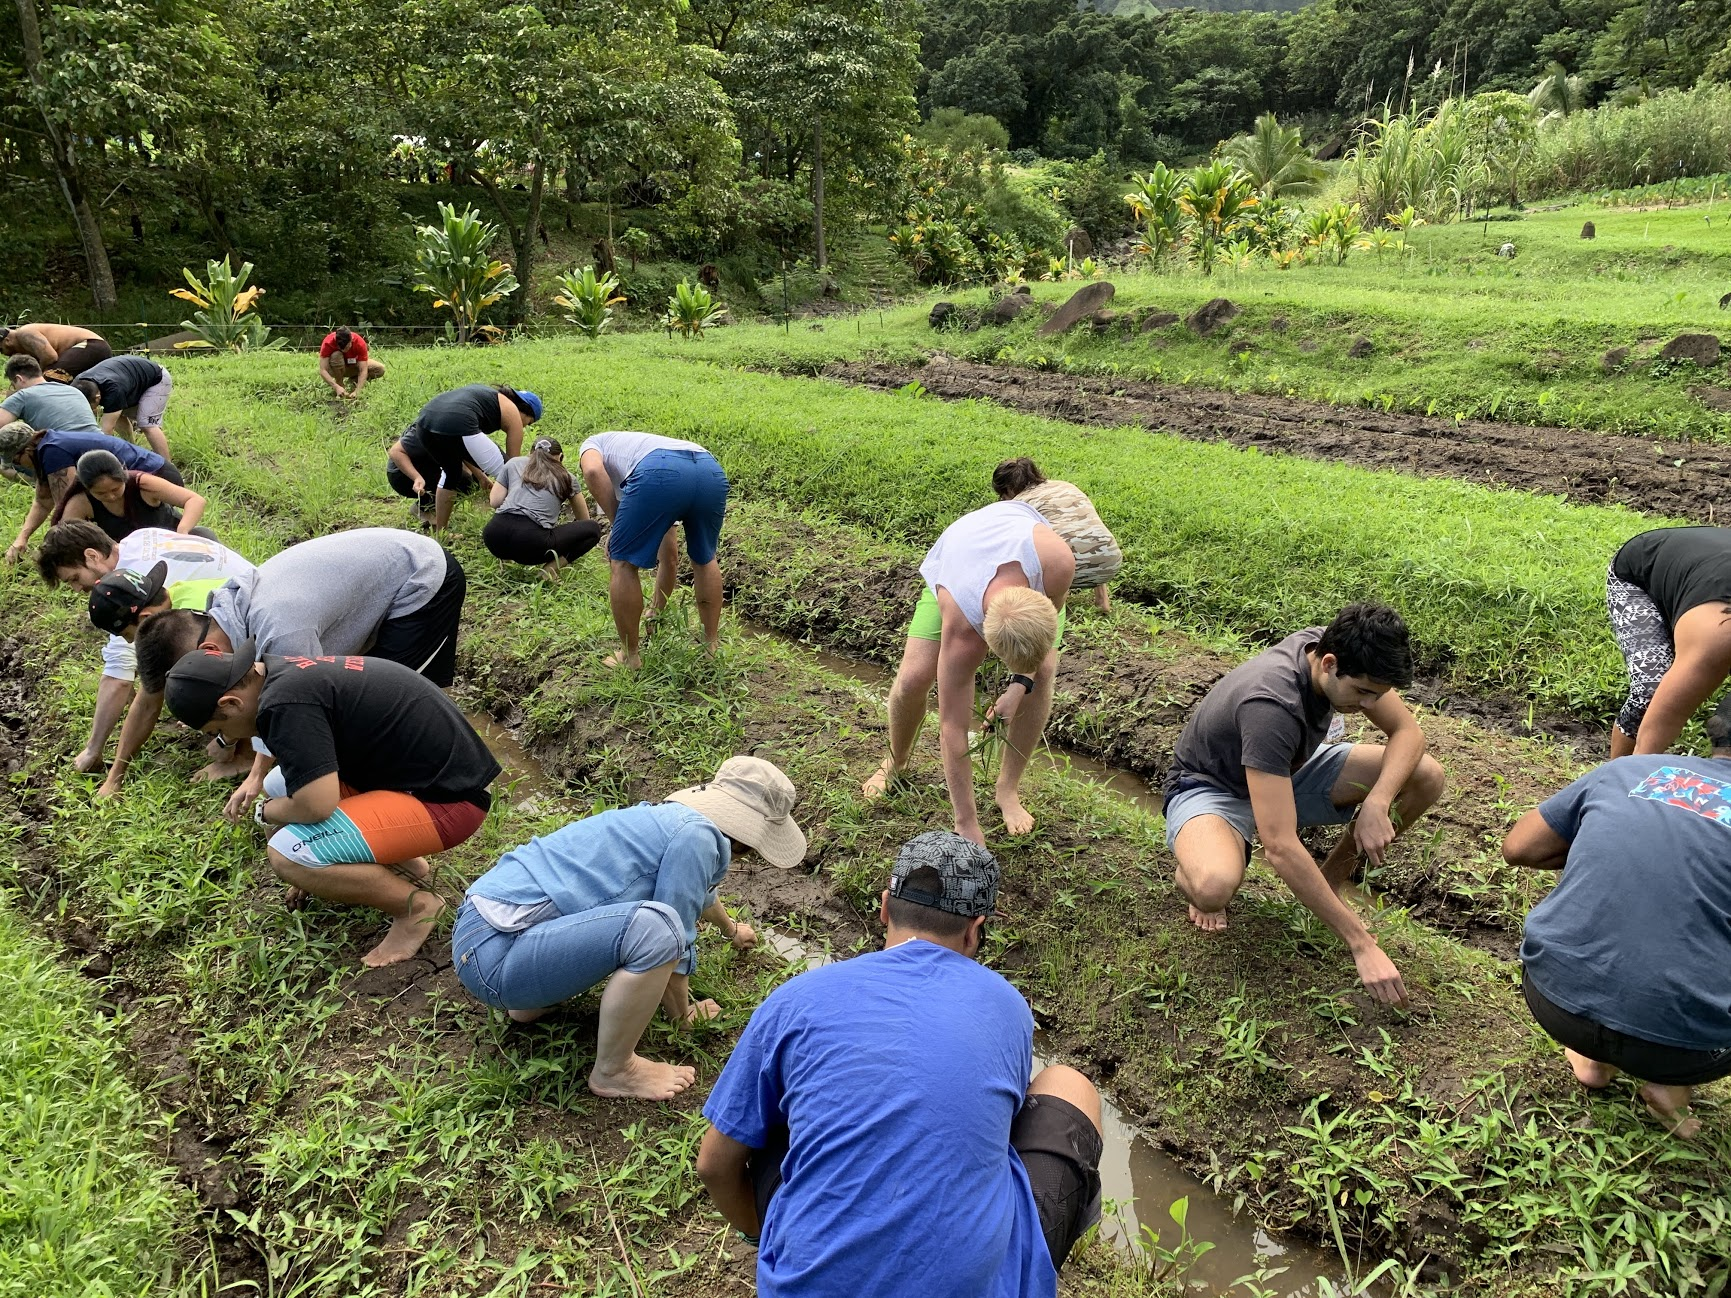 PBCTE Cohort 2 students working together during new student orientation at Papahana Kuaola, Haʻikū, Oʻahu